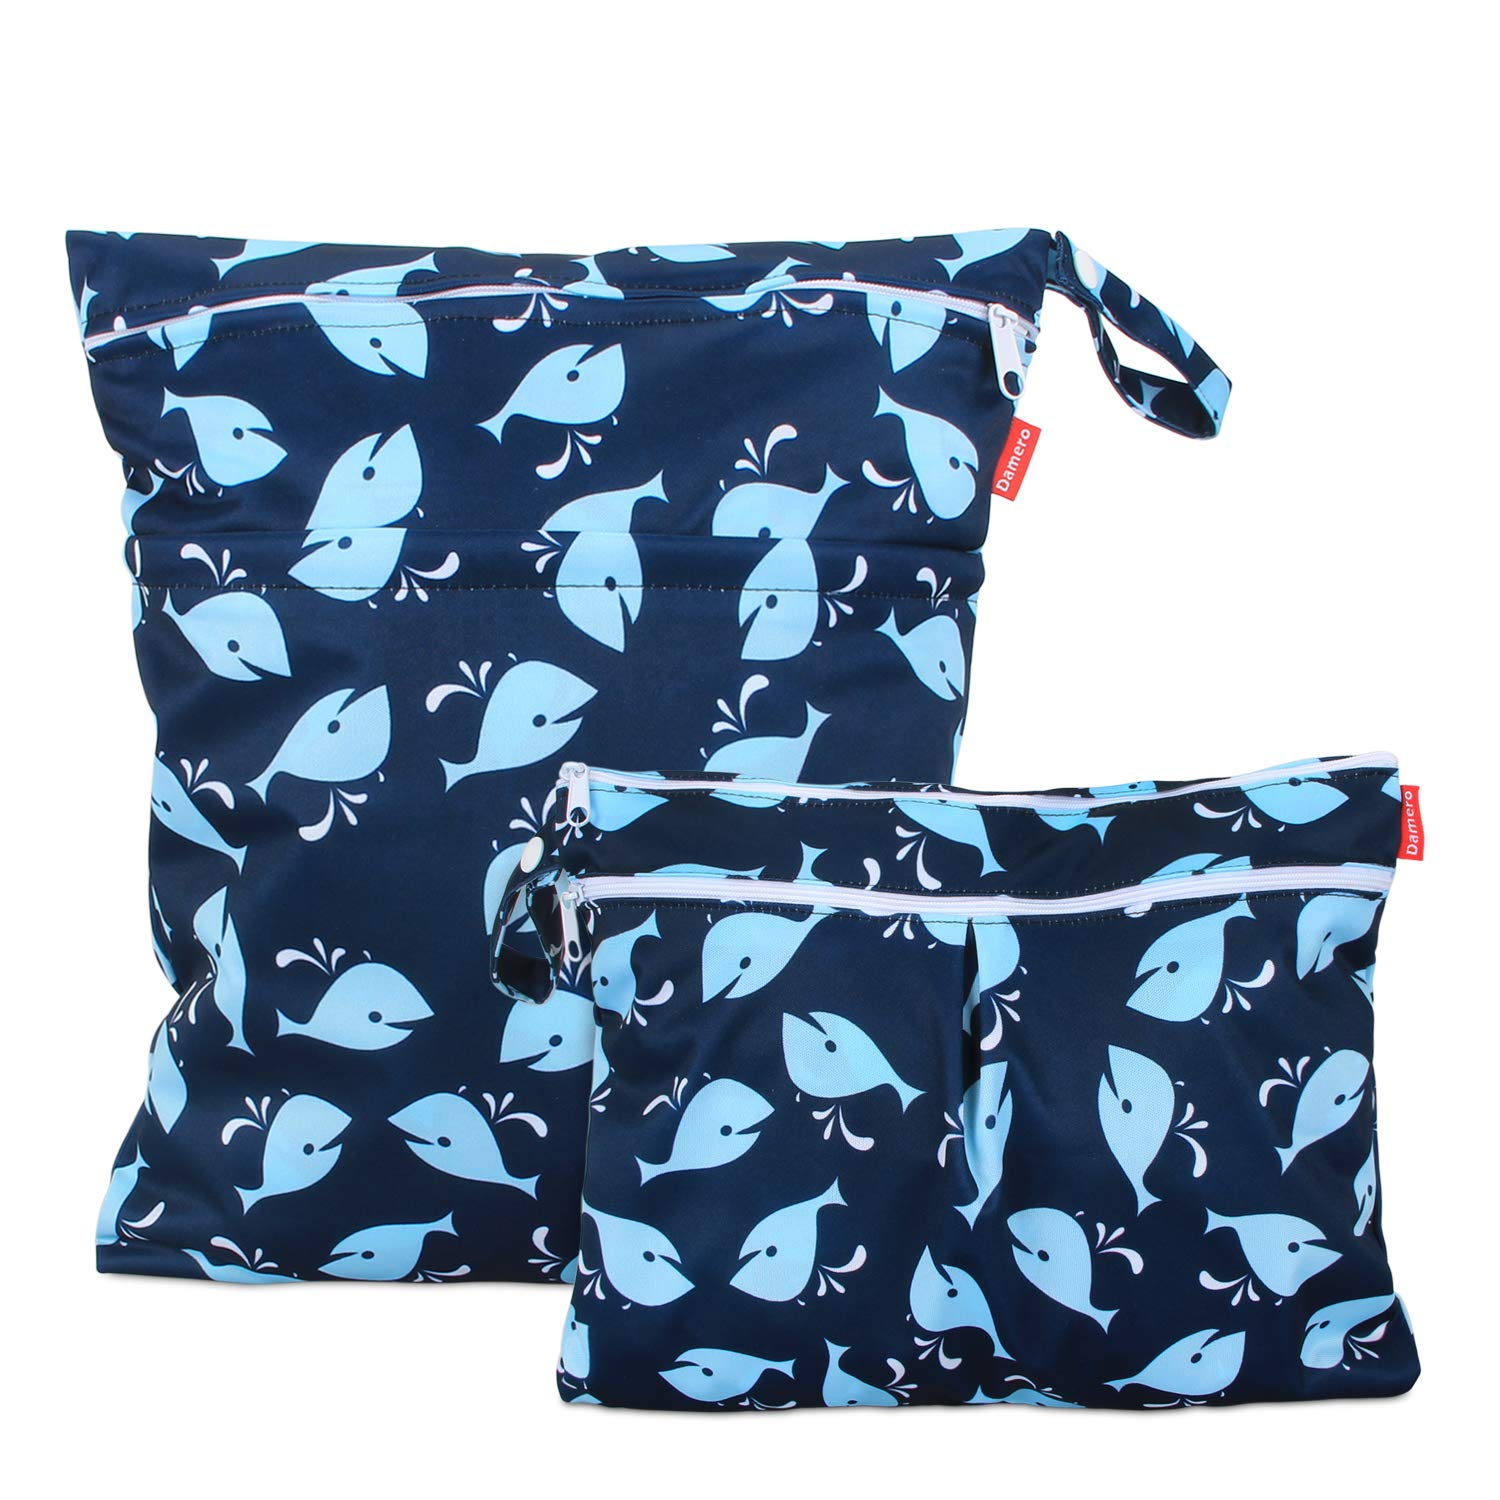 Damero 2Pcs Wet Dry Bag with 2 Zippered Pockets and Snap Handle for Cloth Diaper, Swimsuit, Clothes, Ideal for Travel, Exercise, Daycare, Roomy and Water-Resistant (Small+Large,Whale)